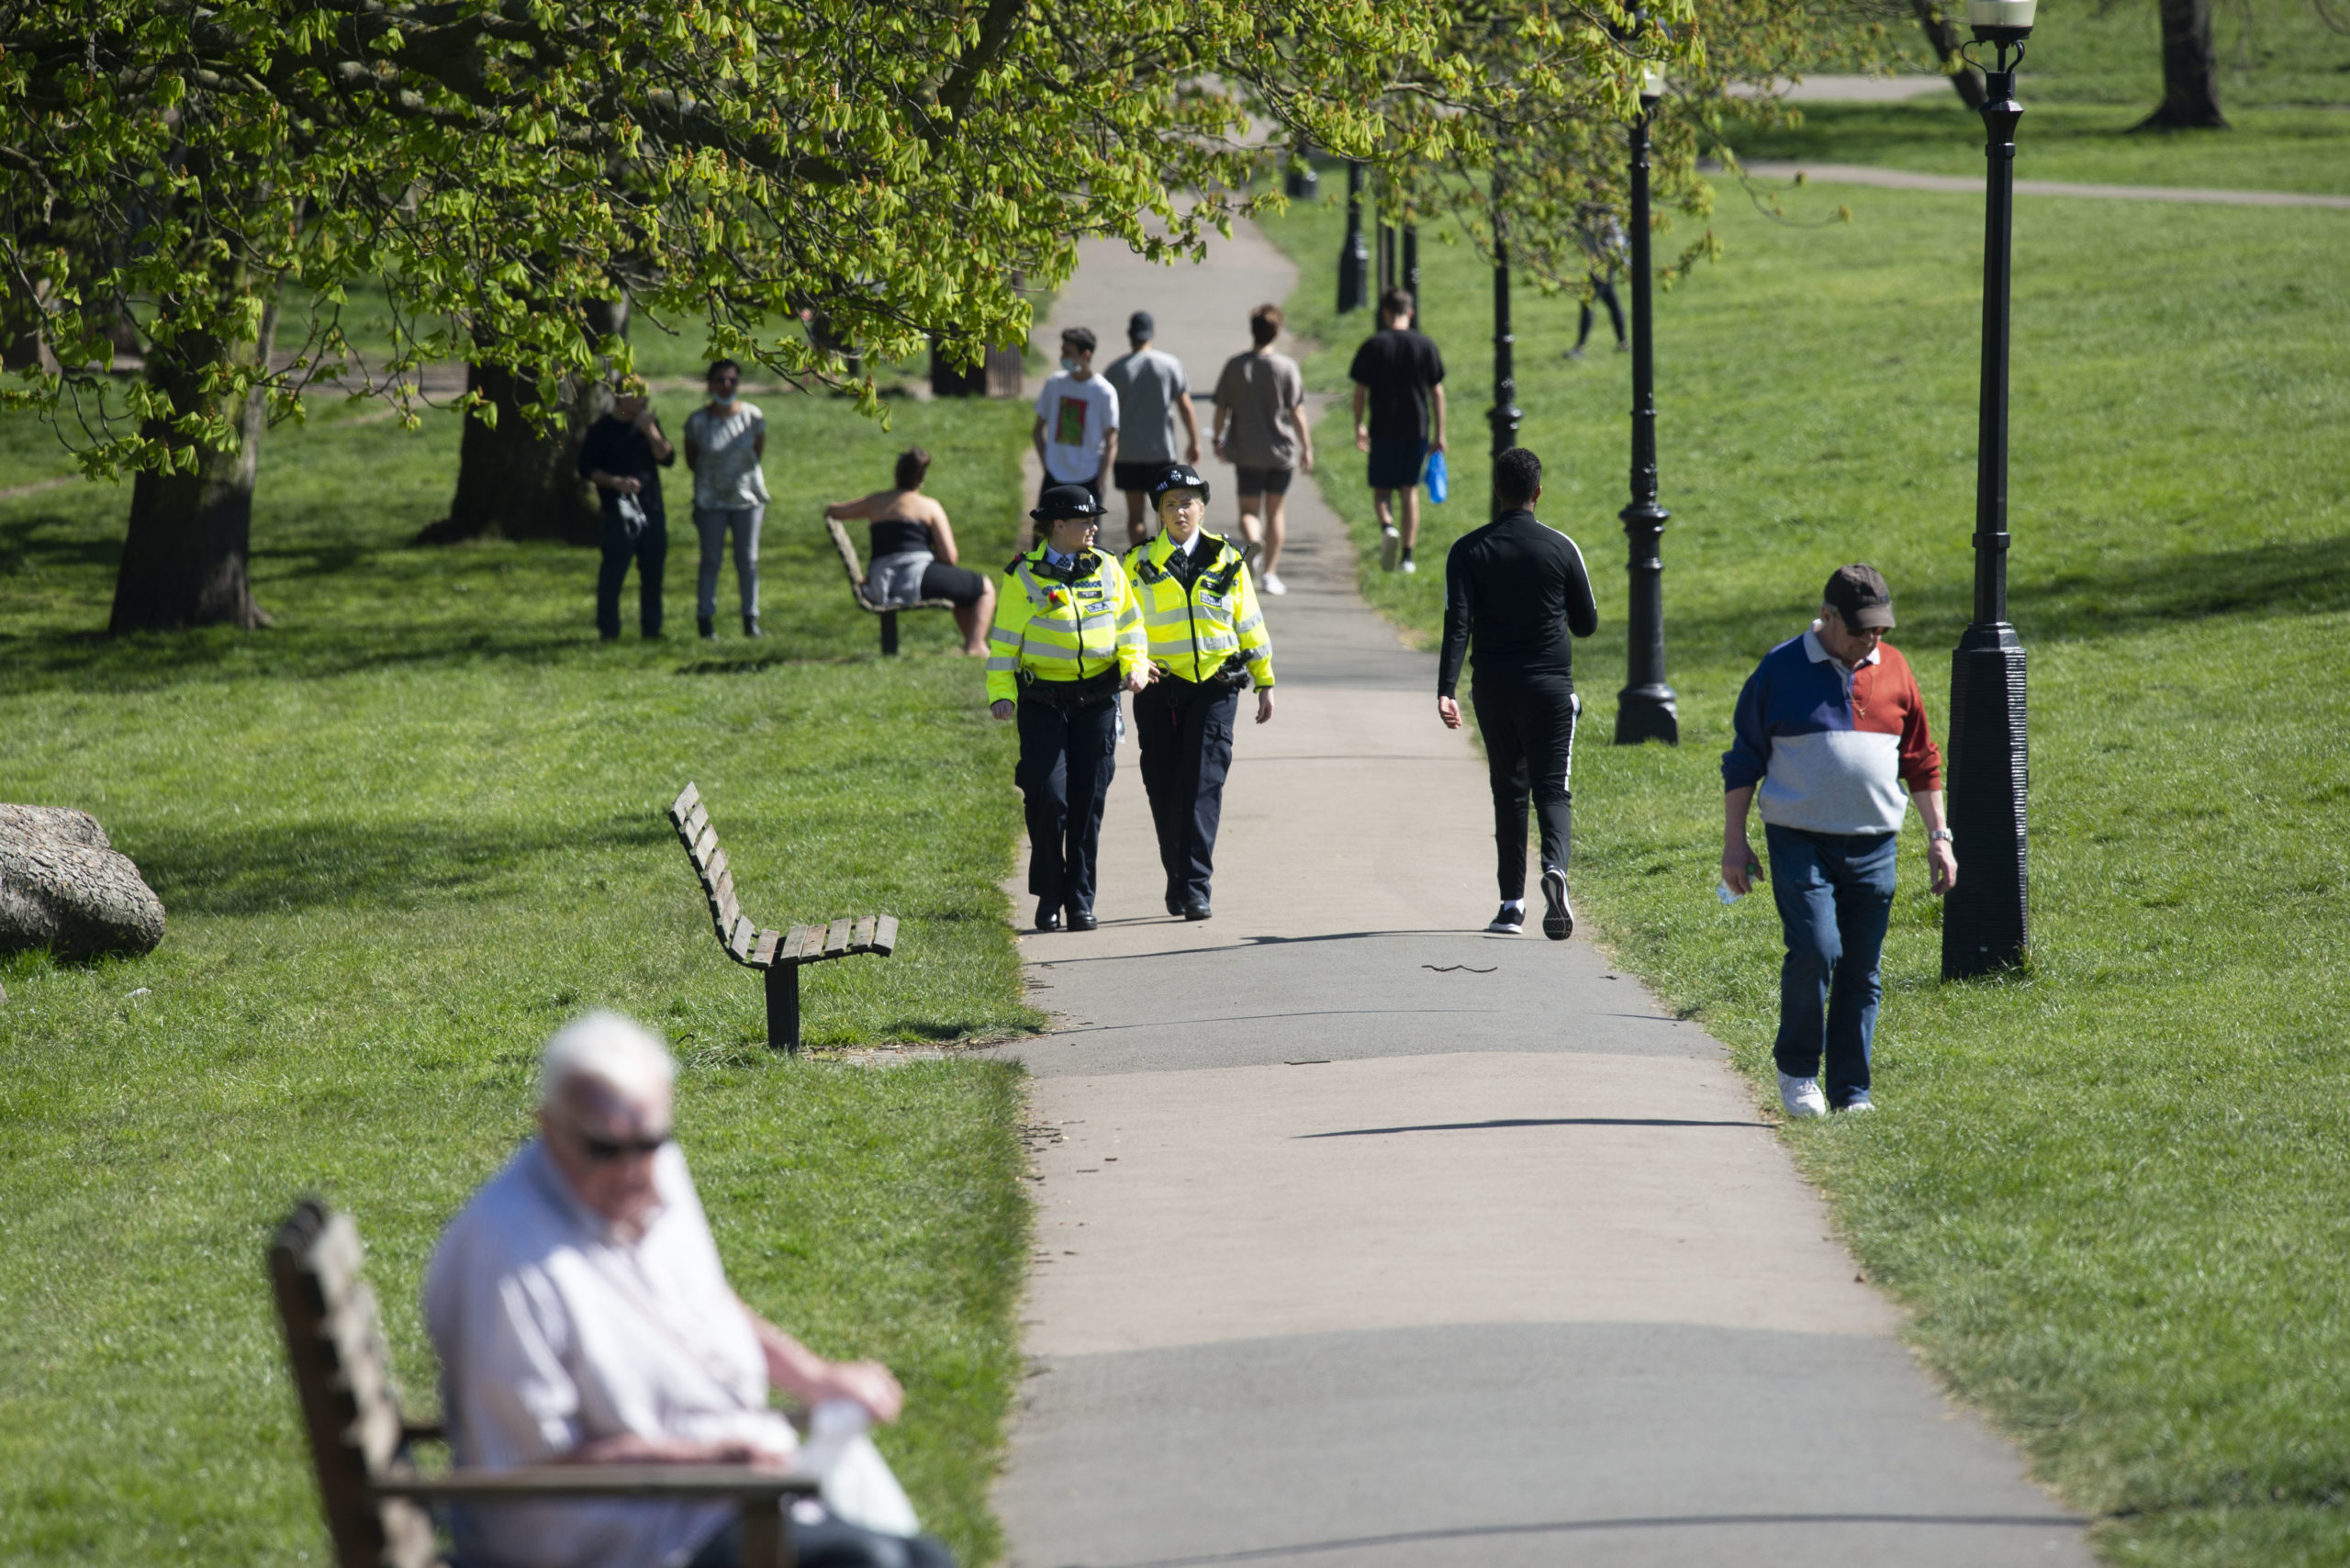 UK police in a park. Dominic Raab has set out the government's five key targets before lifting lockdown